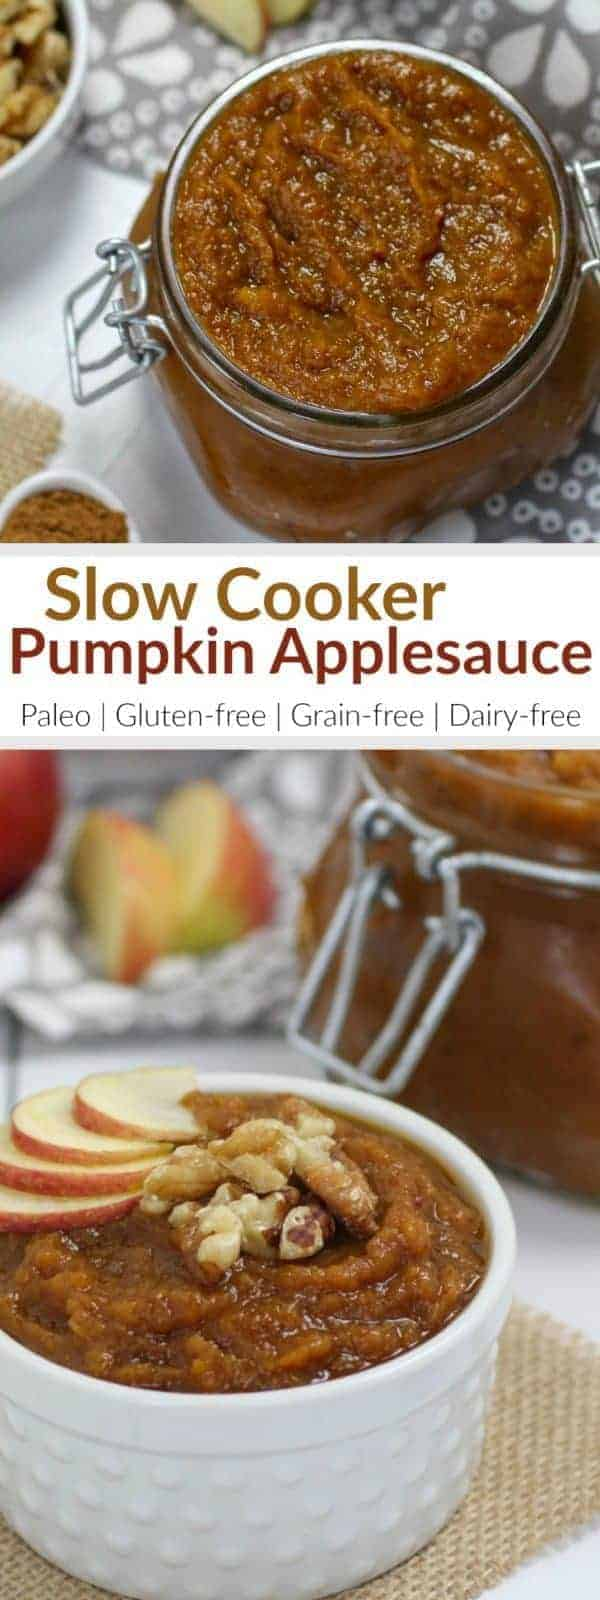 This Slow-Cooker Pumpkin Applesauce not only makes for the most delicious breakfast or snack when served with yogurt but it will also fill your home with a beautiful, flavors of Fall aroma. | healthy slow cooker recipes | healthy crockpot recipes | healthy applesauce recipes | how to make homemade applesauce | healthy pumpkin recipes | healthy fall recipes | paleo pumpkin recipes | gluten free pumpkin recipes | dairy free pumpkin recipes | unique applesauce recipes || The Real Food Dietitians